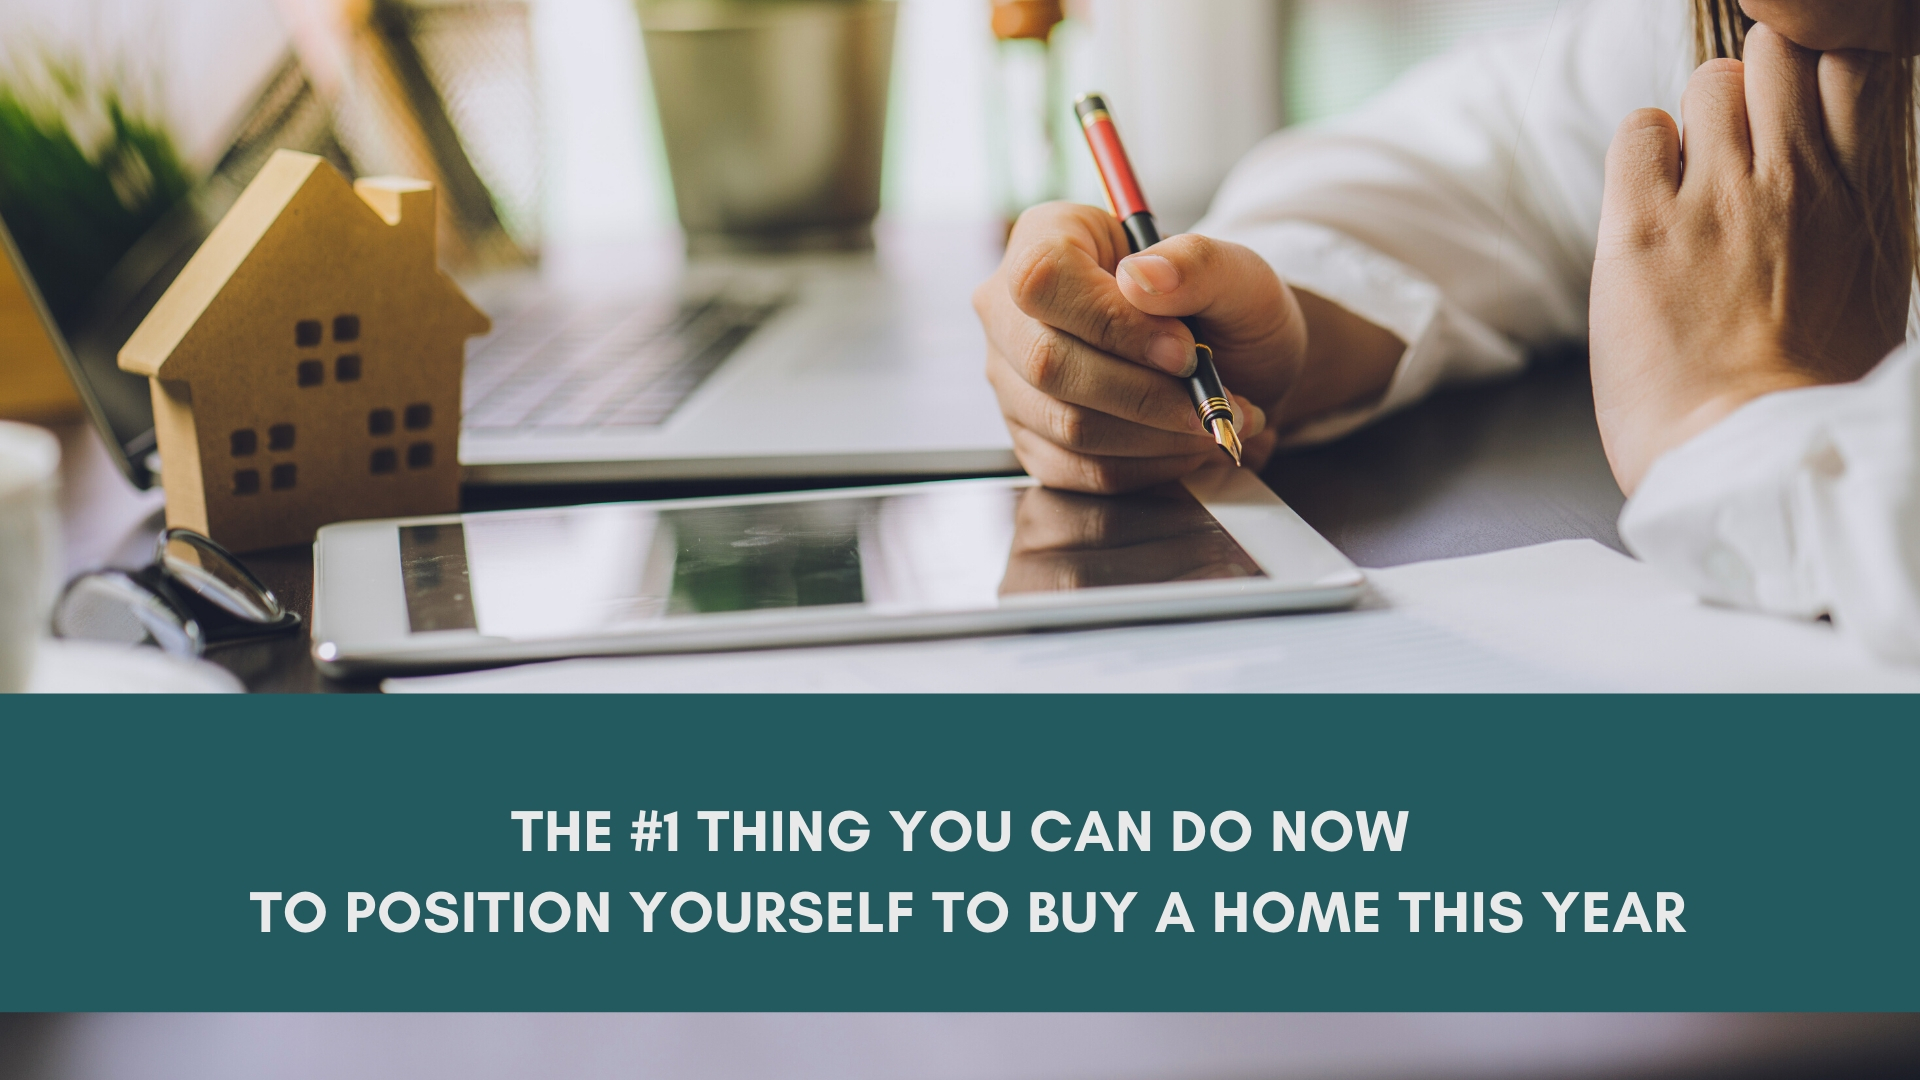 Get preapproved online to buy a home